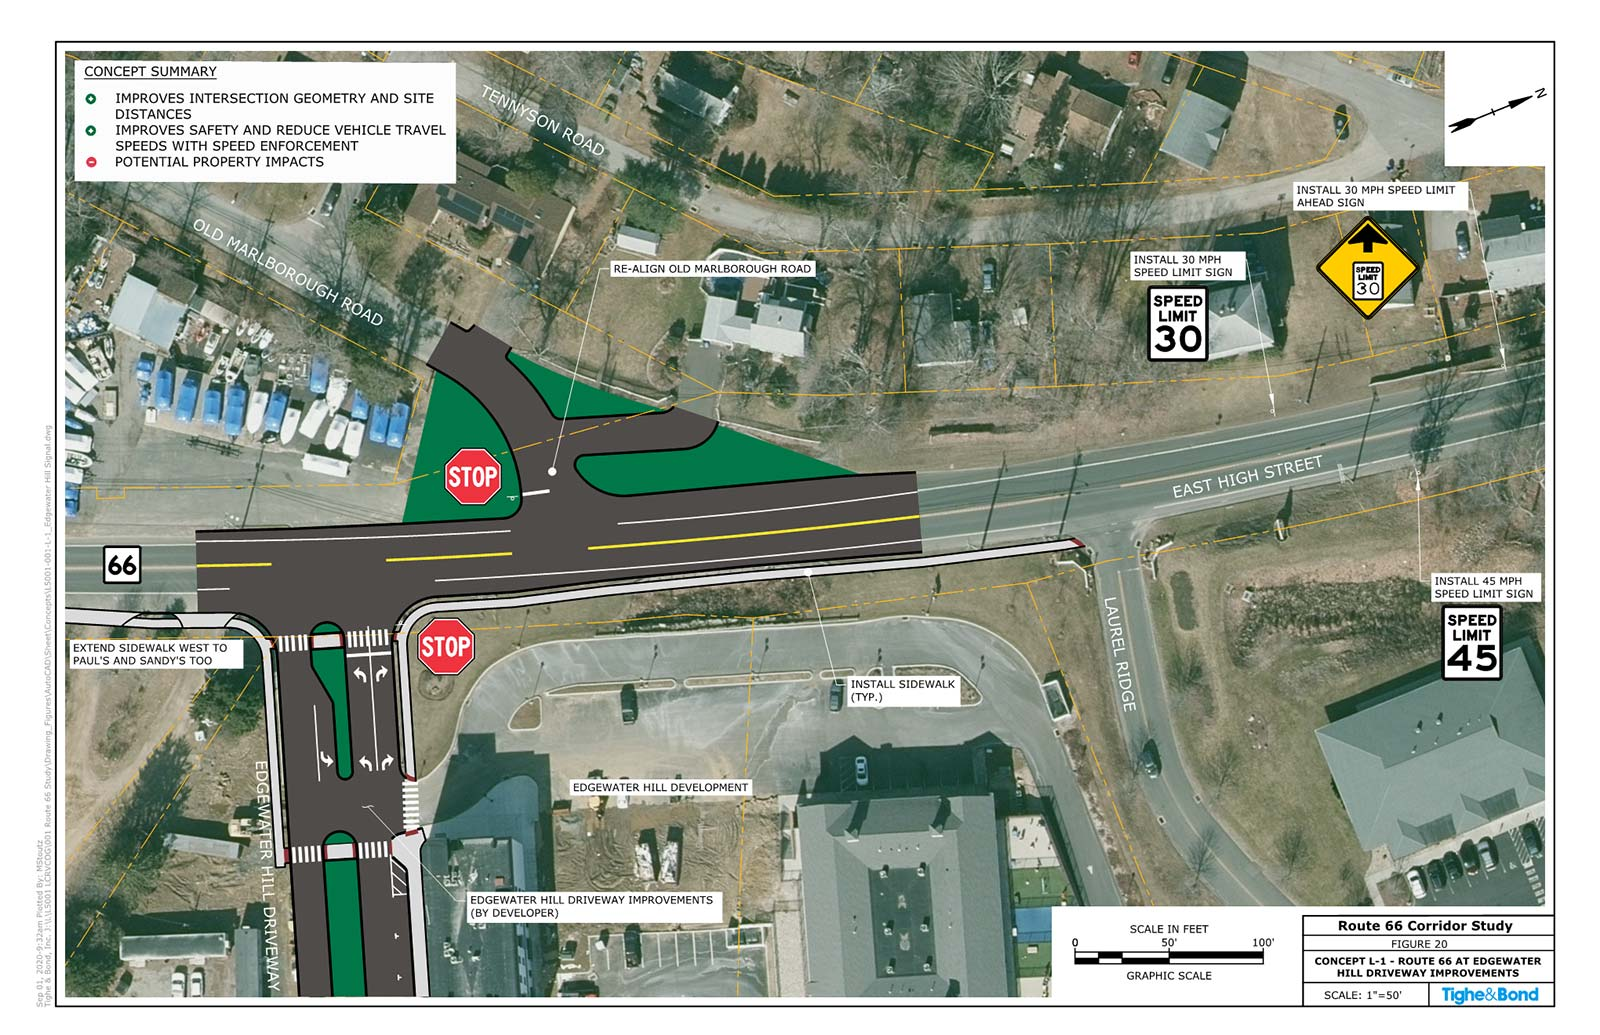 Route 66 at Edgewater Hill Driveway Intersection Improvements (Concept L-1). Route 66 Transportation Study, Portland and East Hampton, CT.